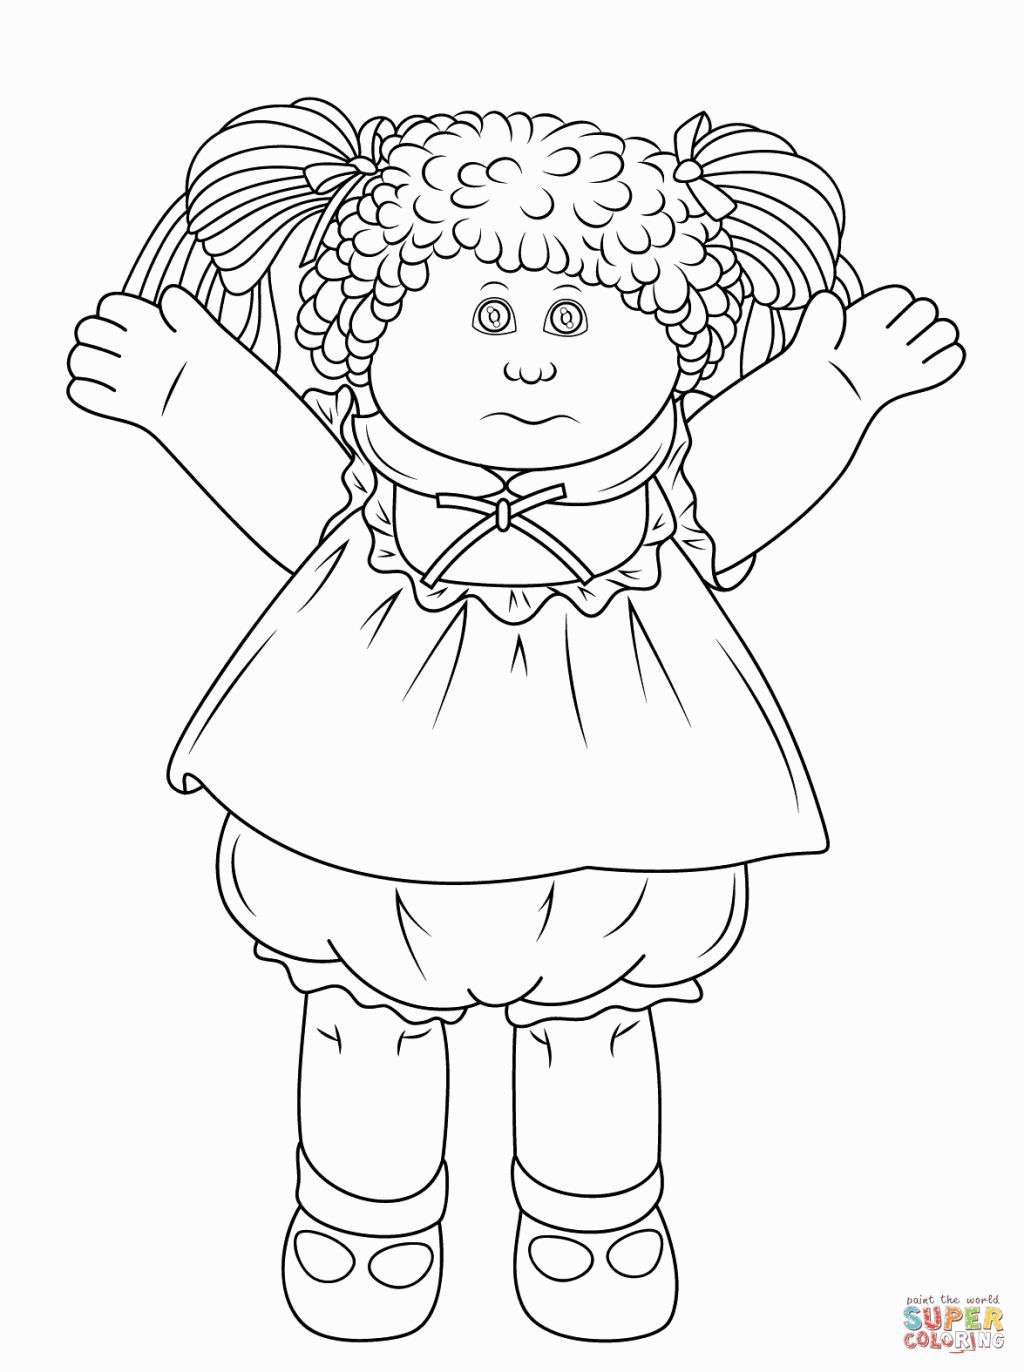 Cabbage Patch Kids Coloring Pages Cabbage Patch Color Pages